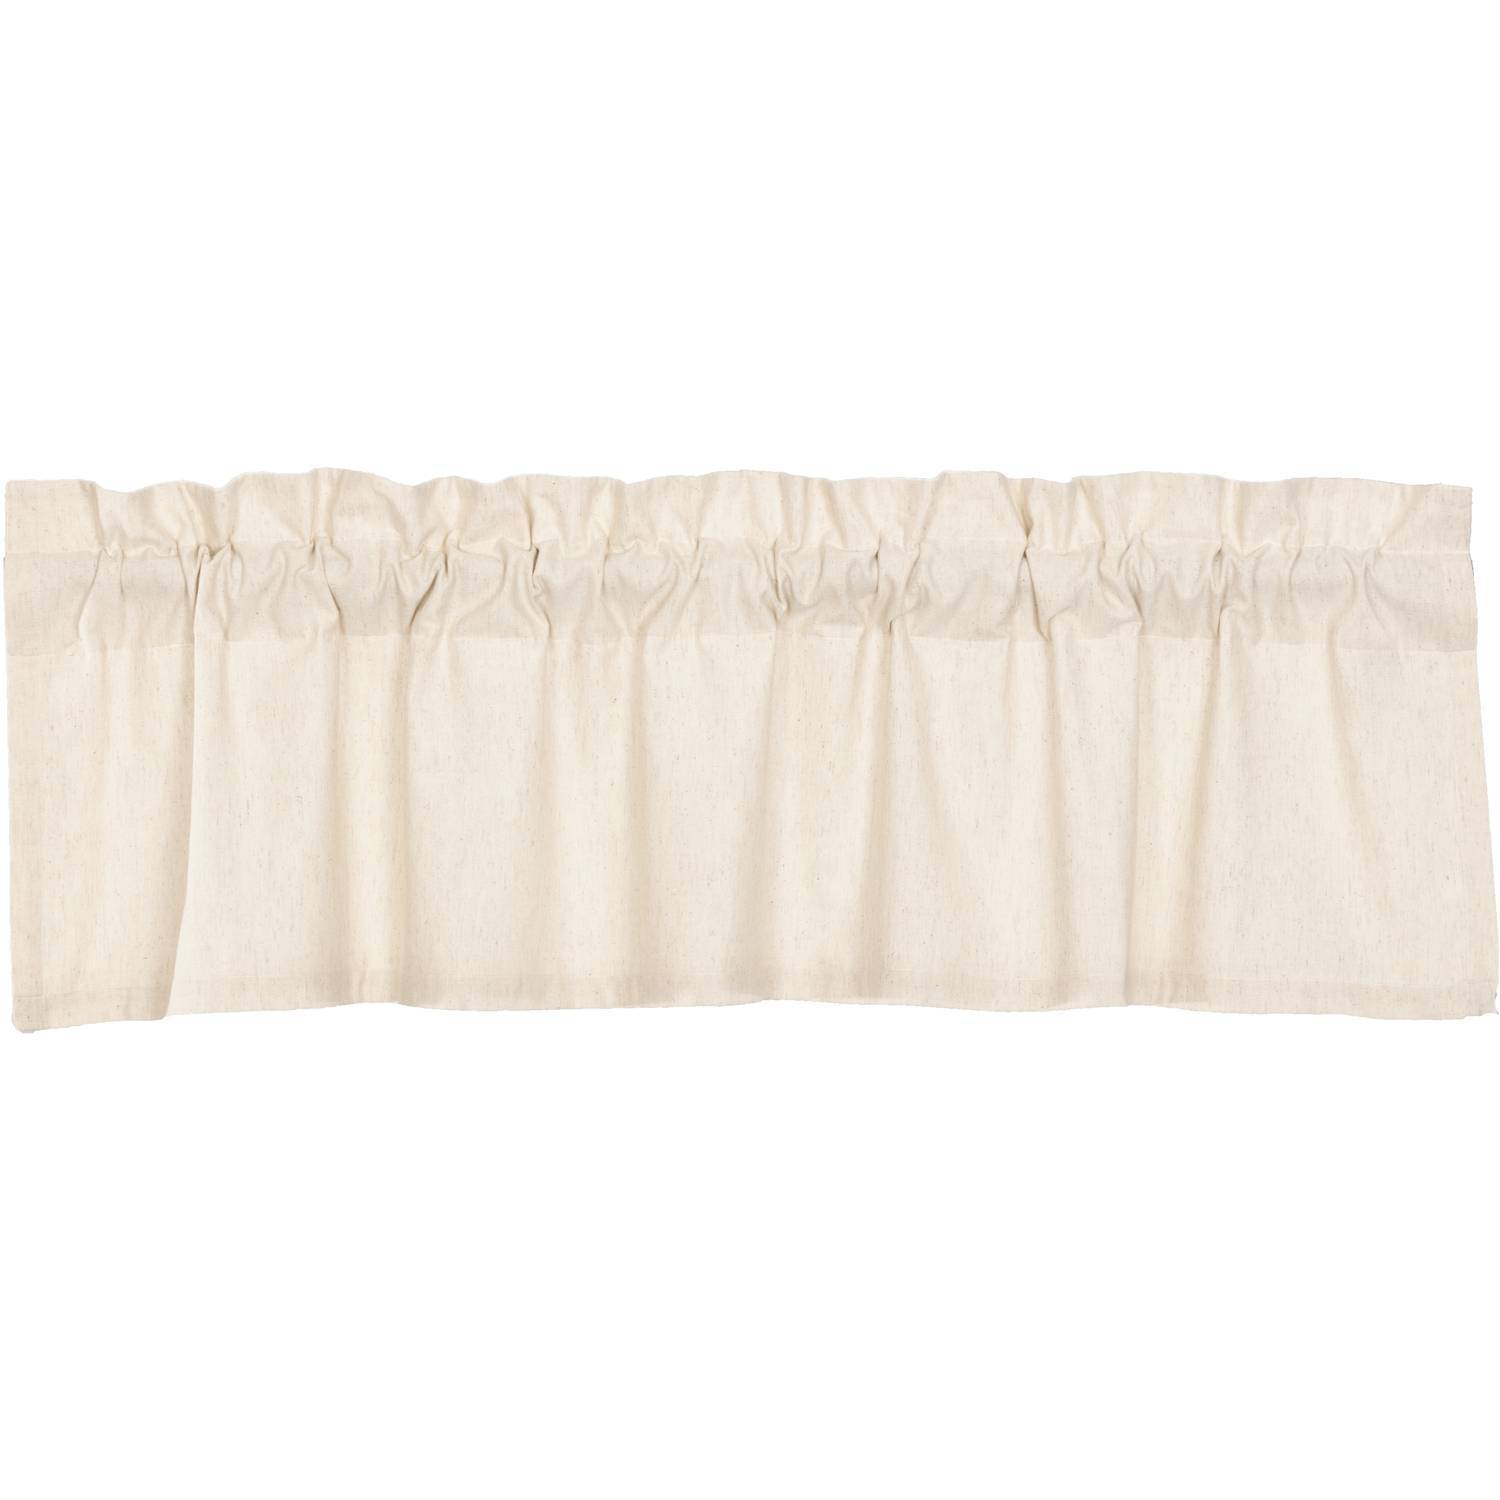 Simple Life Flax Natural Valance 16x60 The Bitloom Co